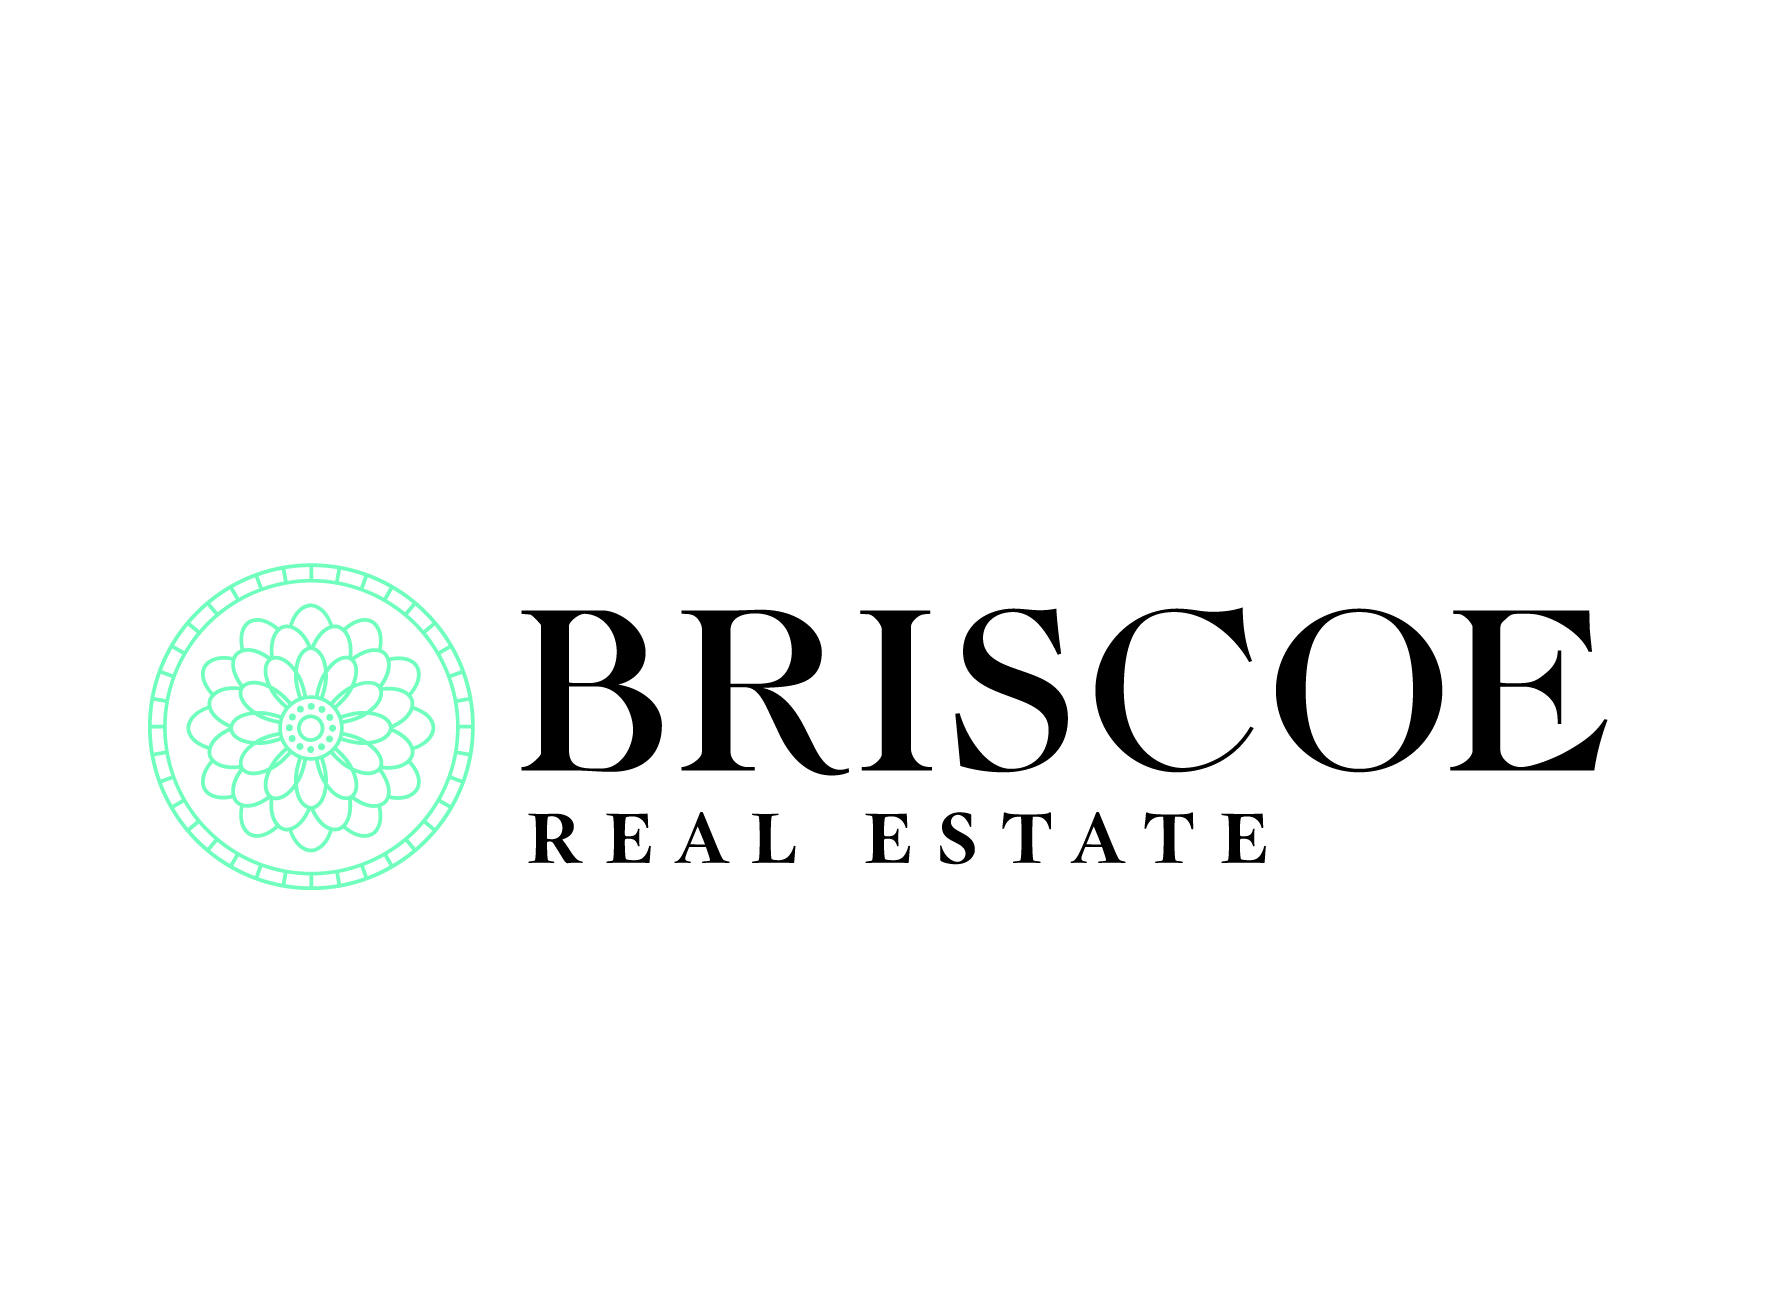 BRISCOE REAL ESTATE Photo